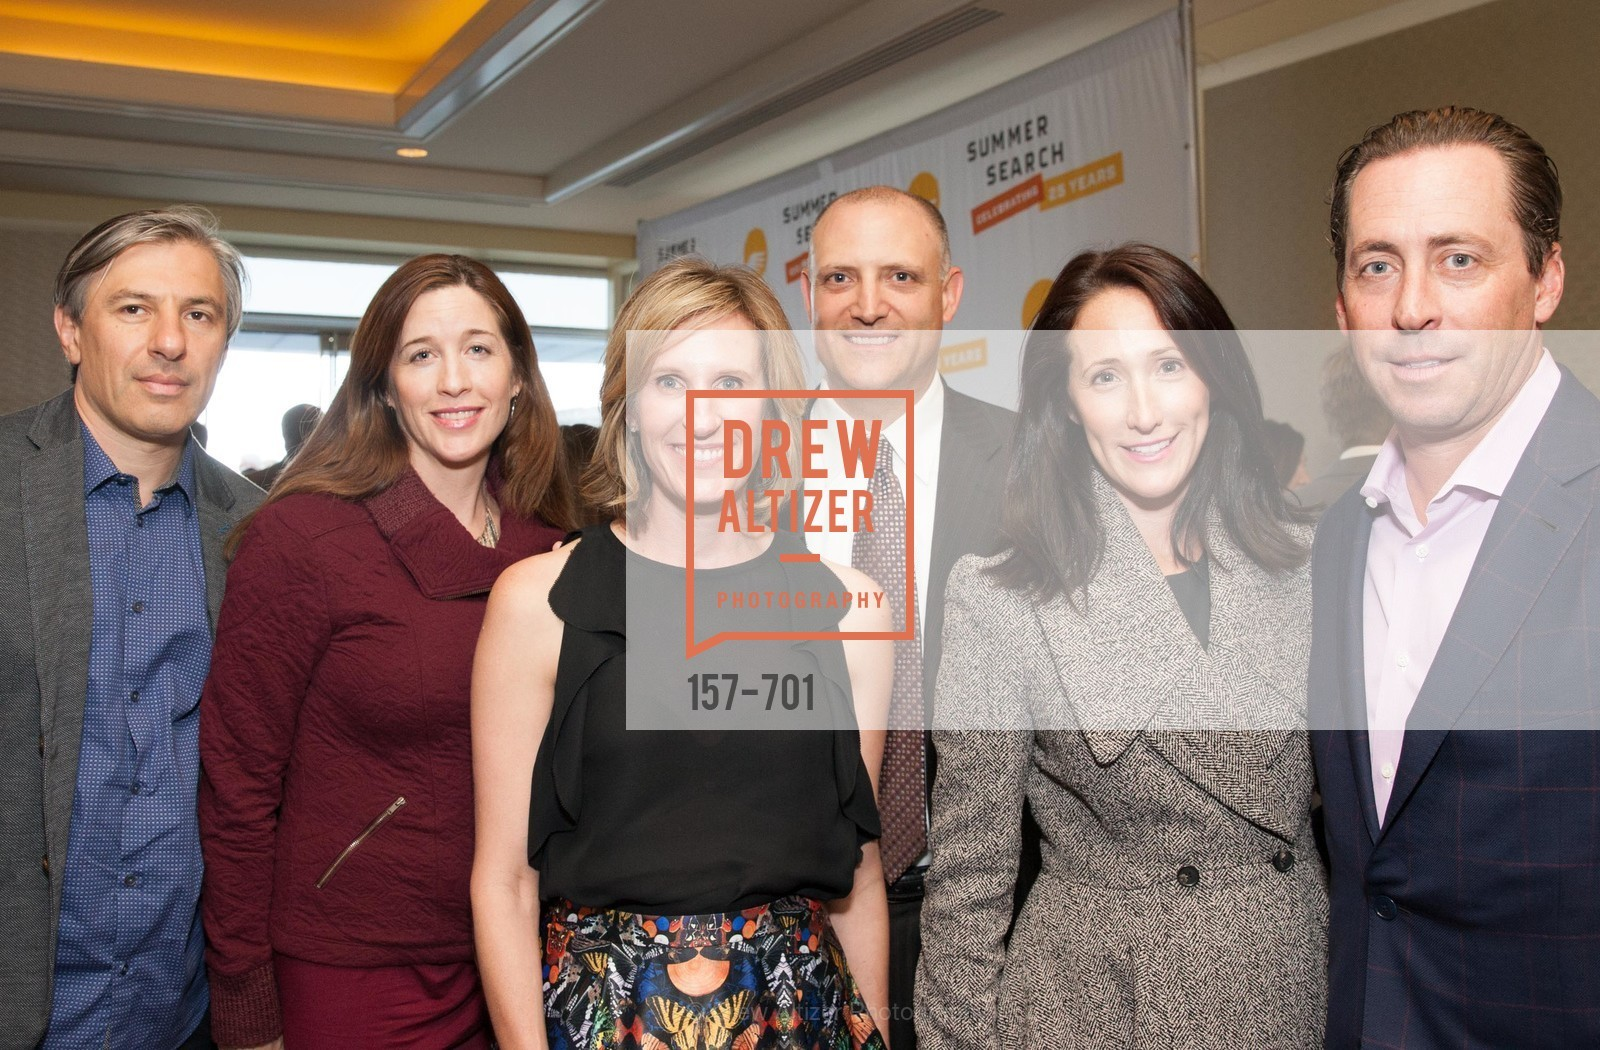 Alex Gurevich, Grenewalt, Hayden Terry, Kathryn Freeman, Bill Freeman, SUMMER SEARCH San Francisco 25th Anniversary, US, May 6th, 2015,Drew Altizer, Drew Altizer Photography, full-service agency, private events, San Francisco photographer, photographer california